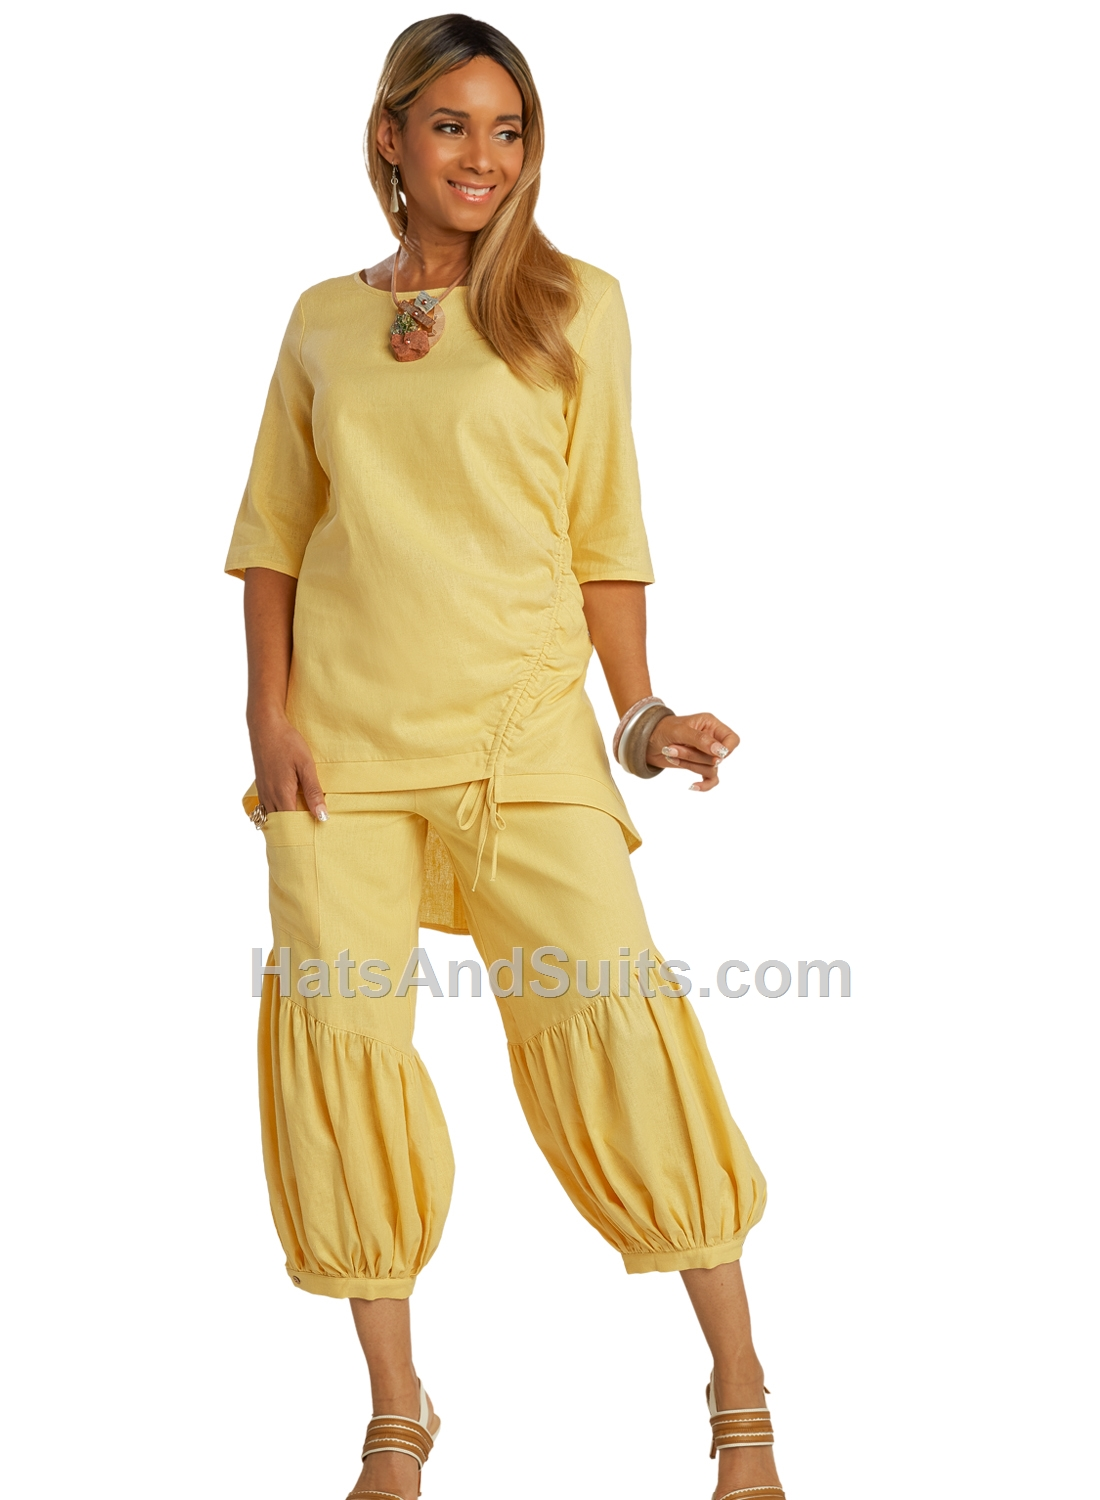 3364-yellow LISA RENE' 2 Pc. Tunic & Pant Set. SP20